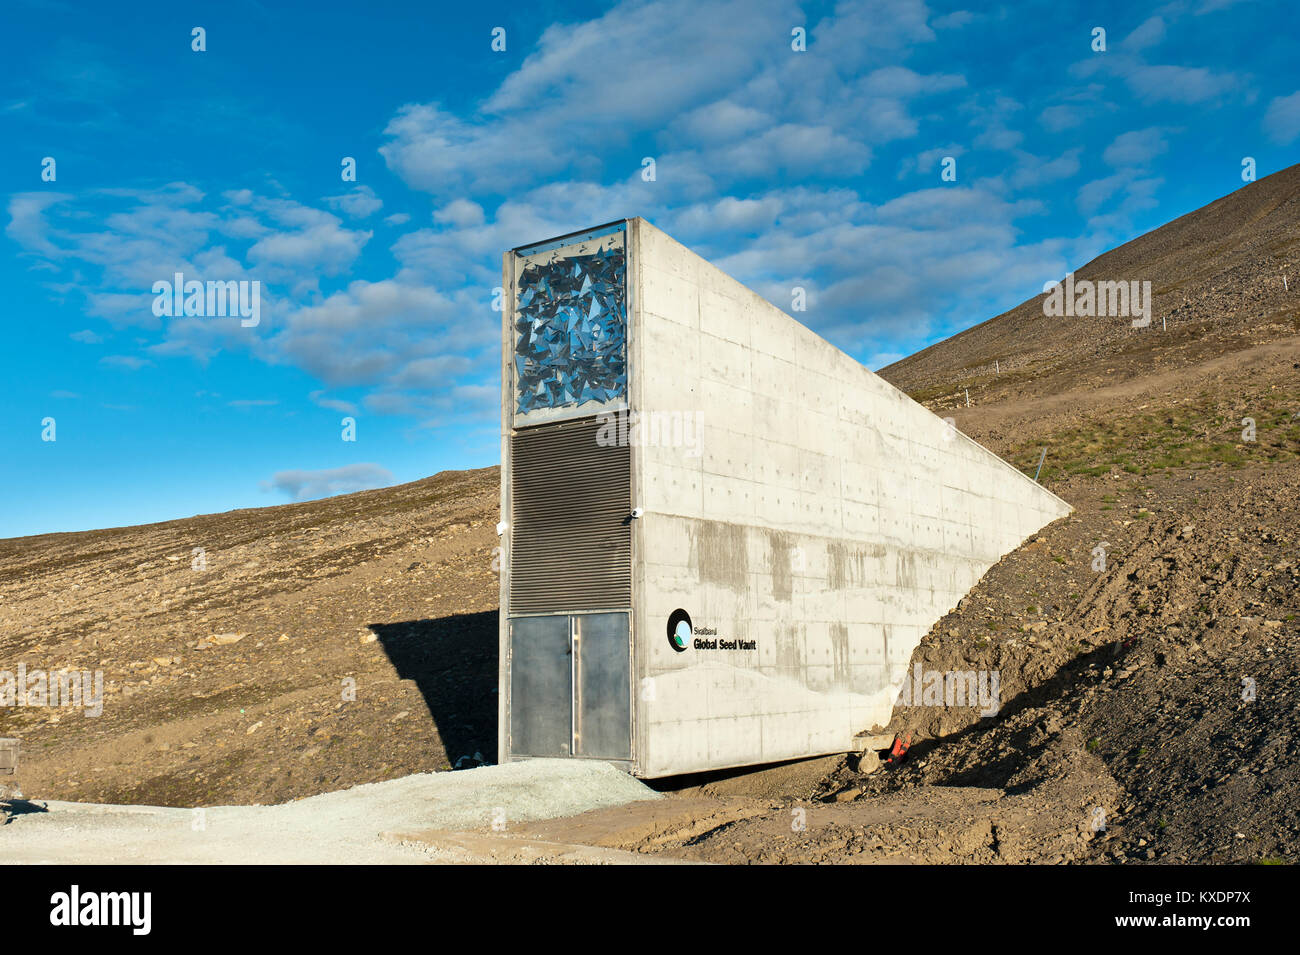 Entrance, Svalbard Global Seed Vault, Worldwide seed vault, at Longyearbyen, Spitsbergen, Svalbard, Norway Stock Photo